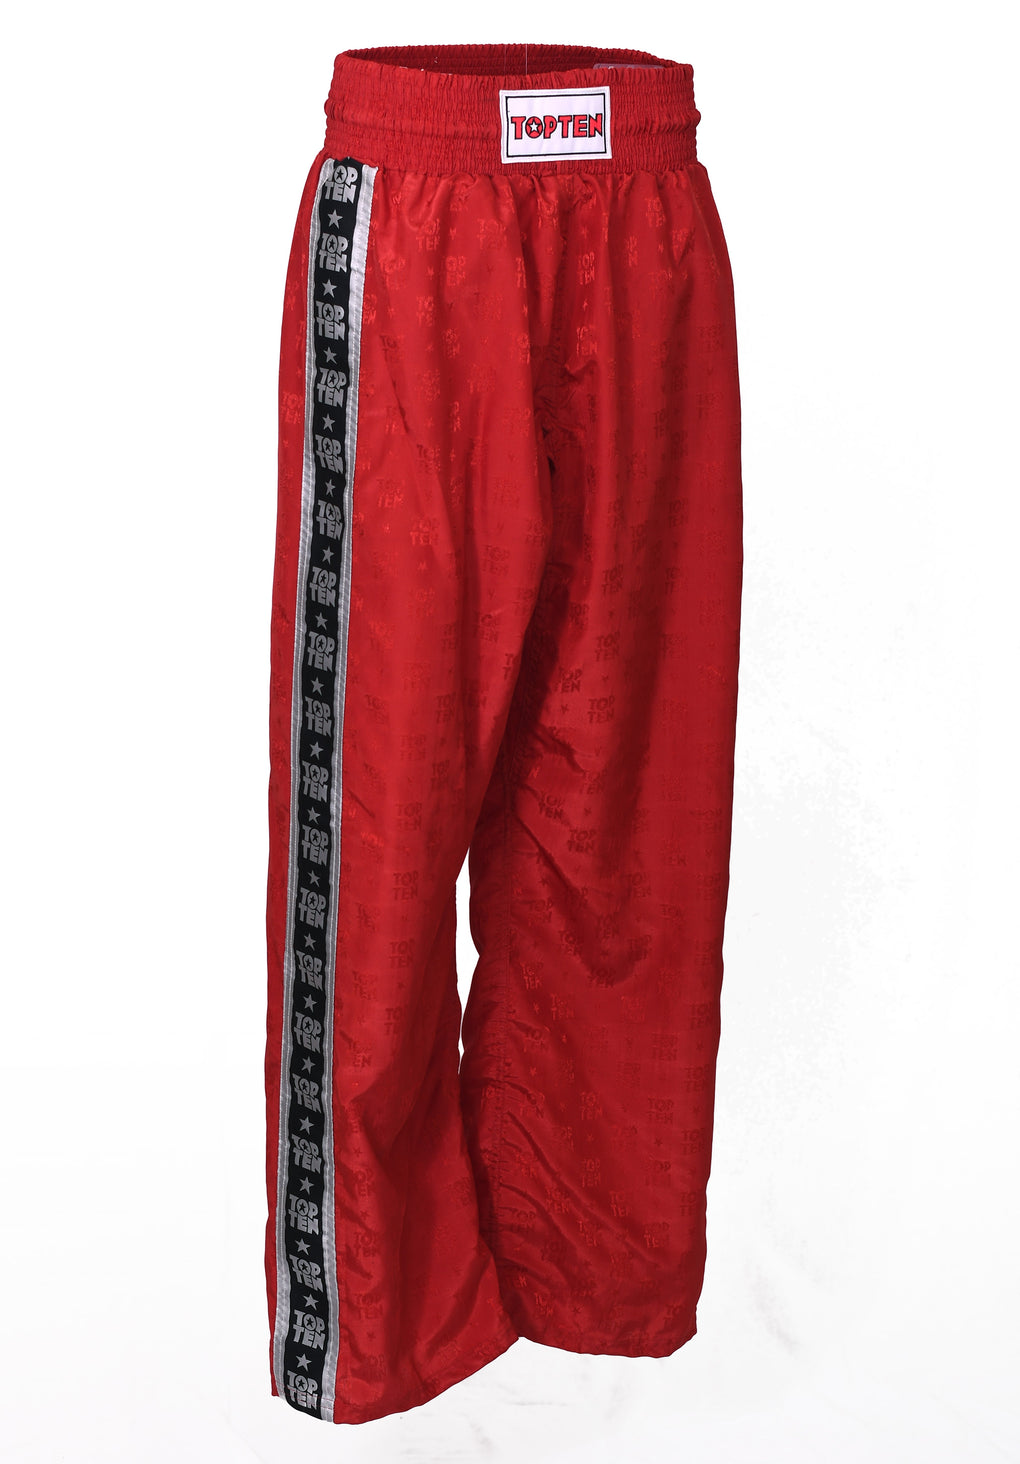 kickboxing pants red